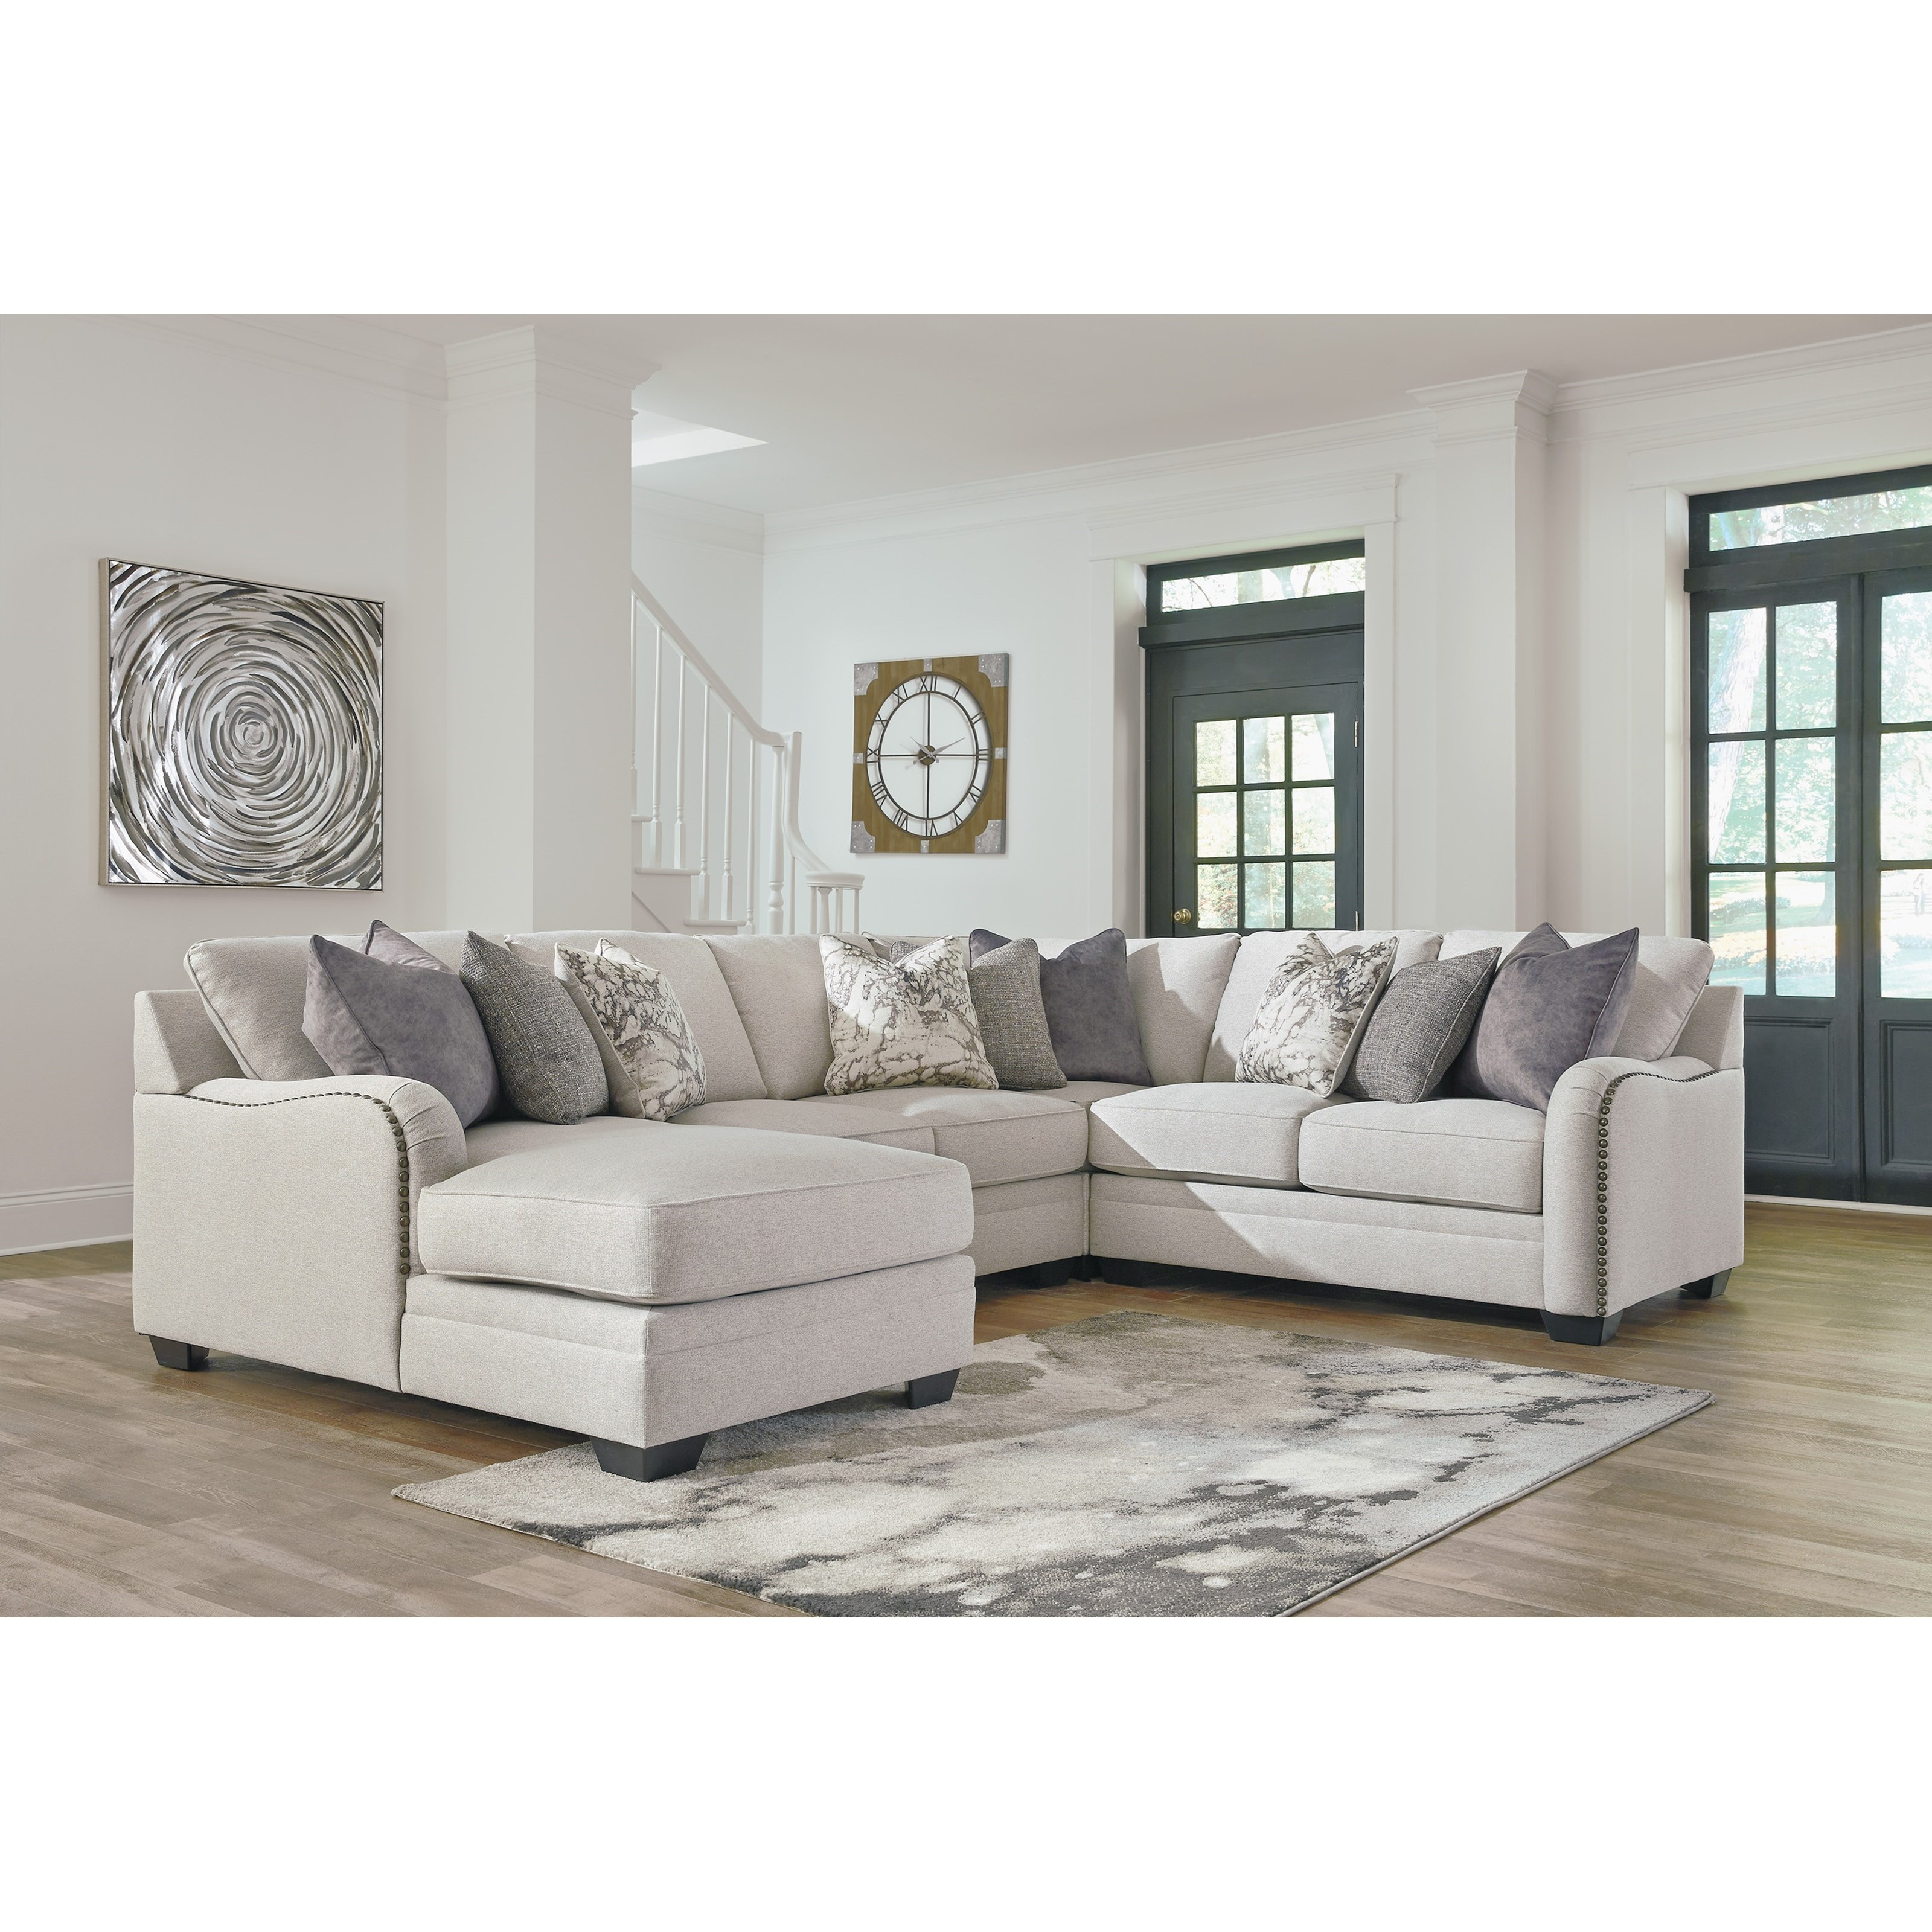 Benchcraft Dellara Casual 4 Piece Sectional With Left Chaise